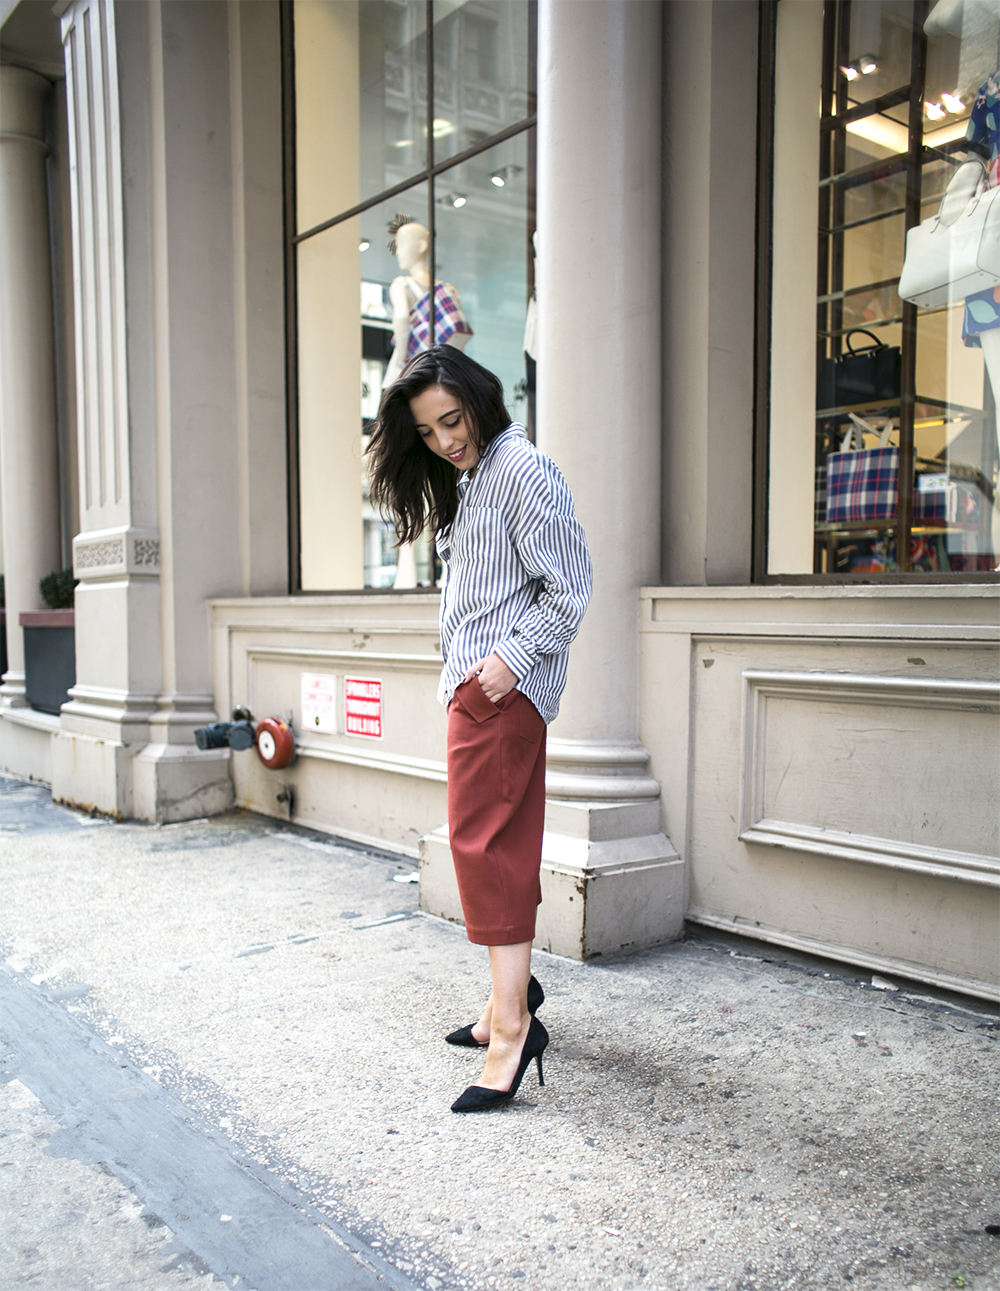 5_sania-claus-demina-outfit-new-york-city-acne-studios-culotte-esprit-shirt-zara-suede-pumps-soho-2015_6